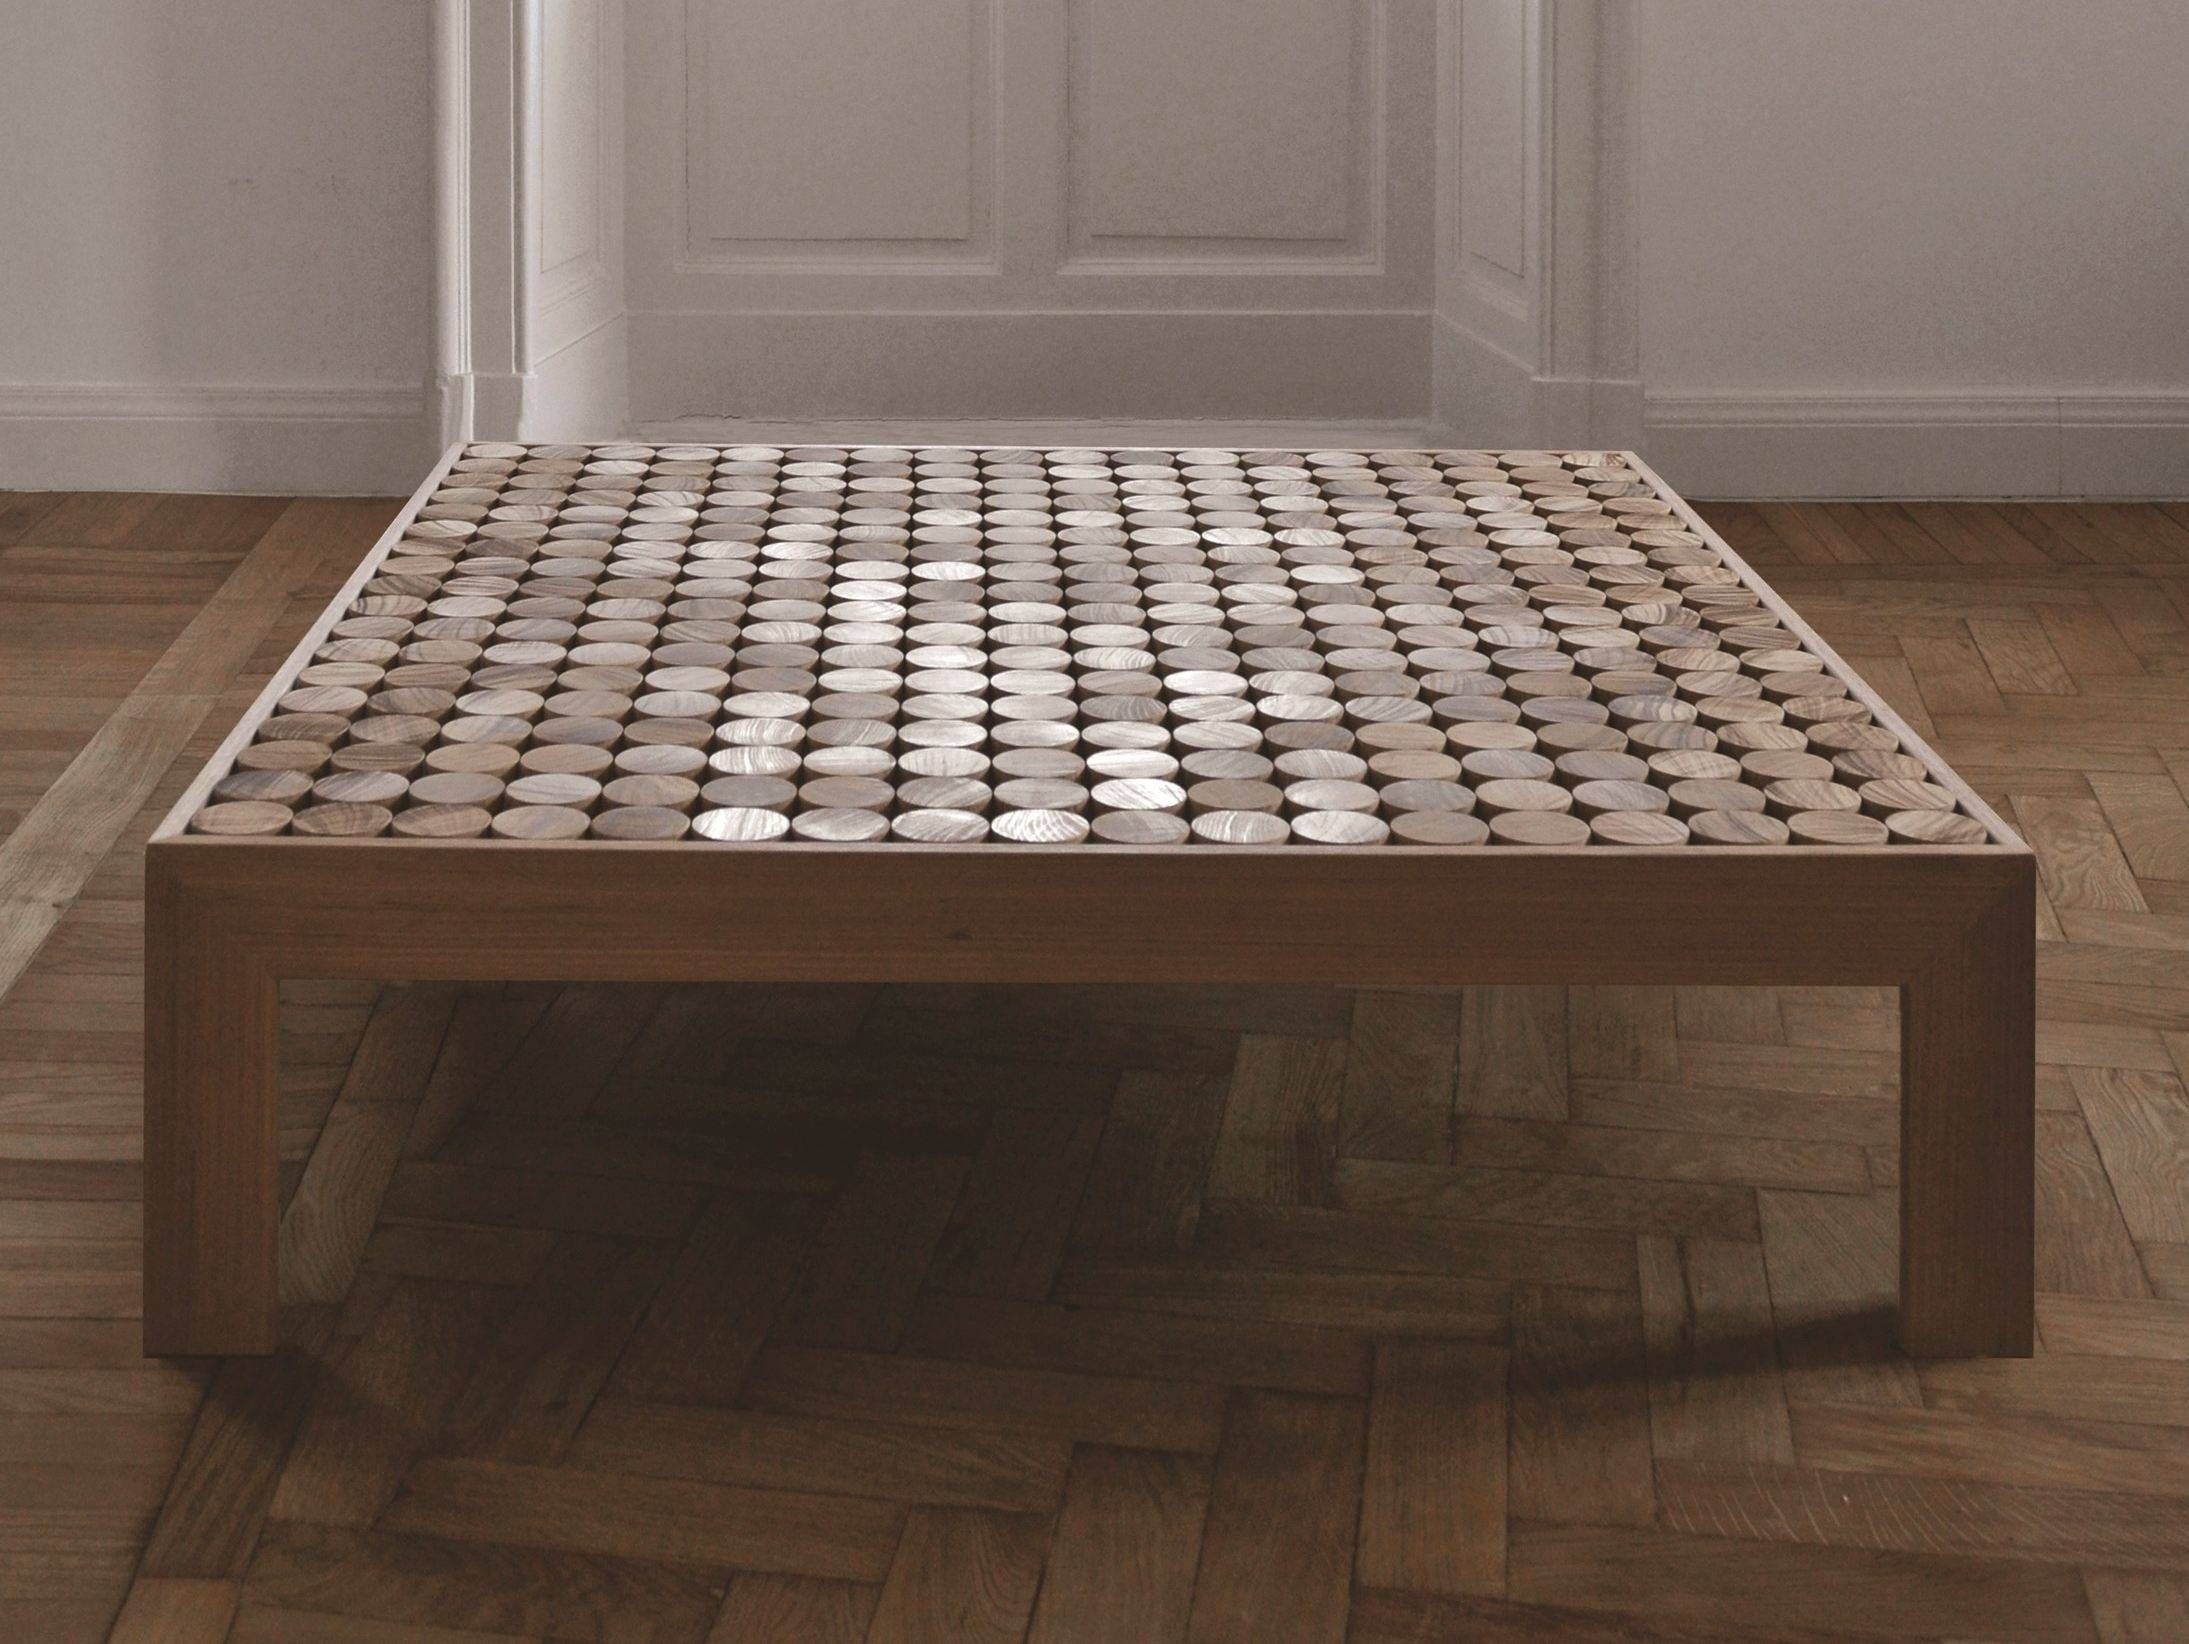 Low Square Coffee Table Wooden | Coffee Tables Decoration Inside Large Square Low Coffee Tables (View 6 of 30)